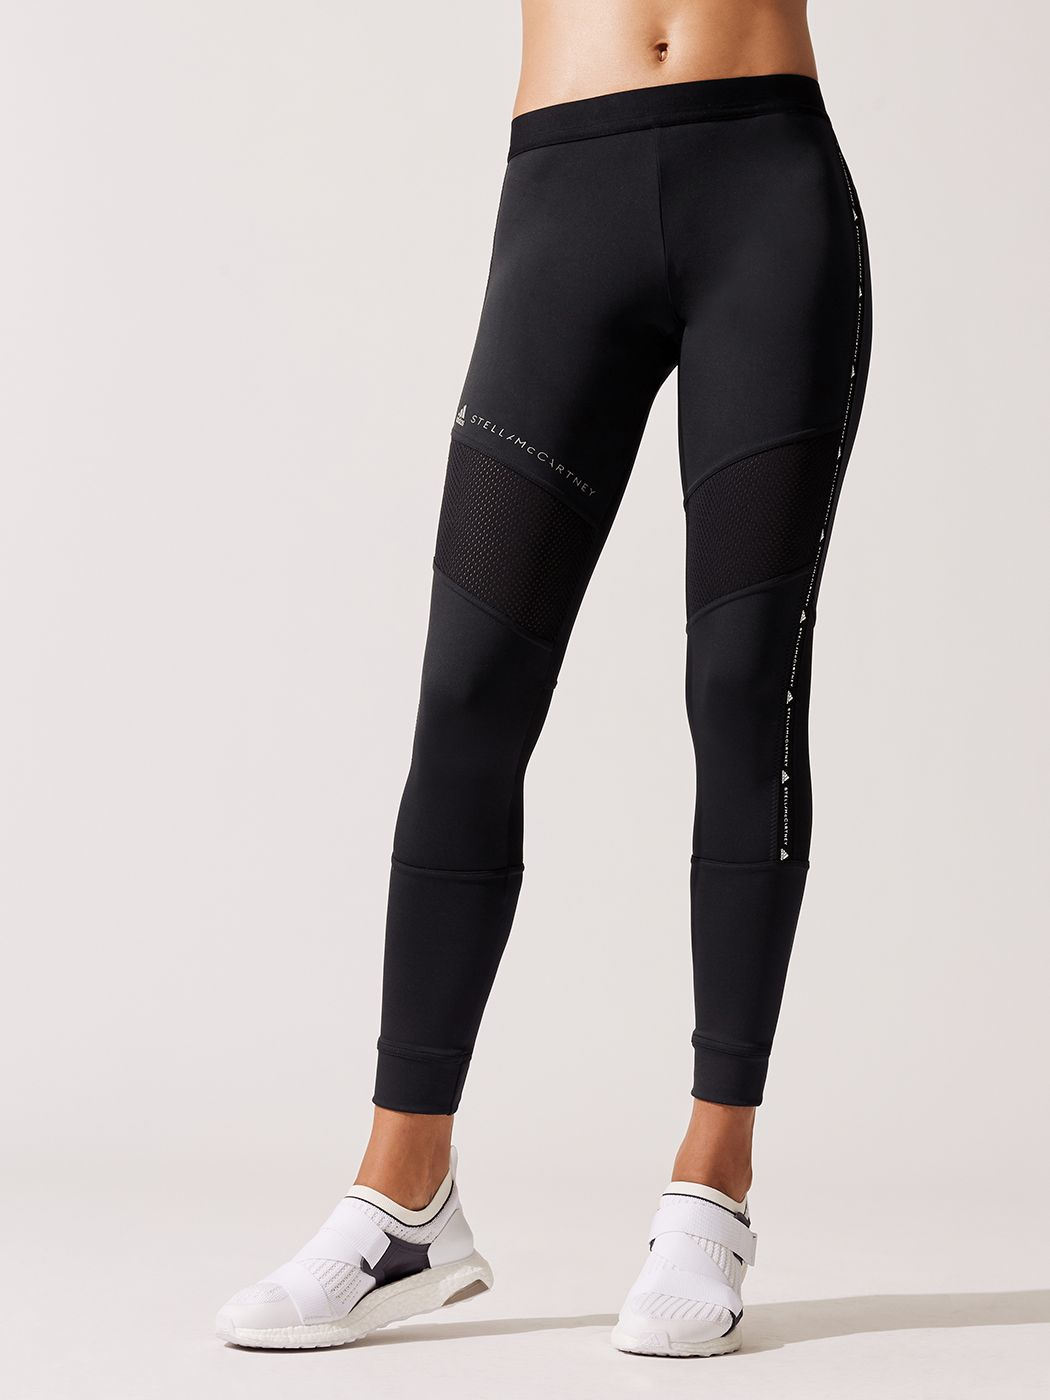 324a570d44b94d Performance Essential Long Tight Leggings in Black by Adidas By Stella  Mccartney from Carbon38